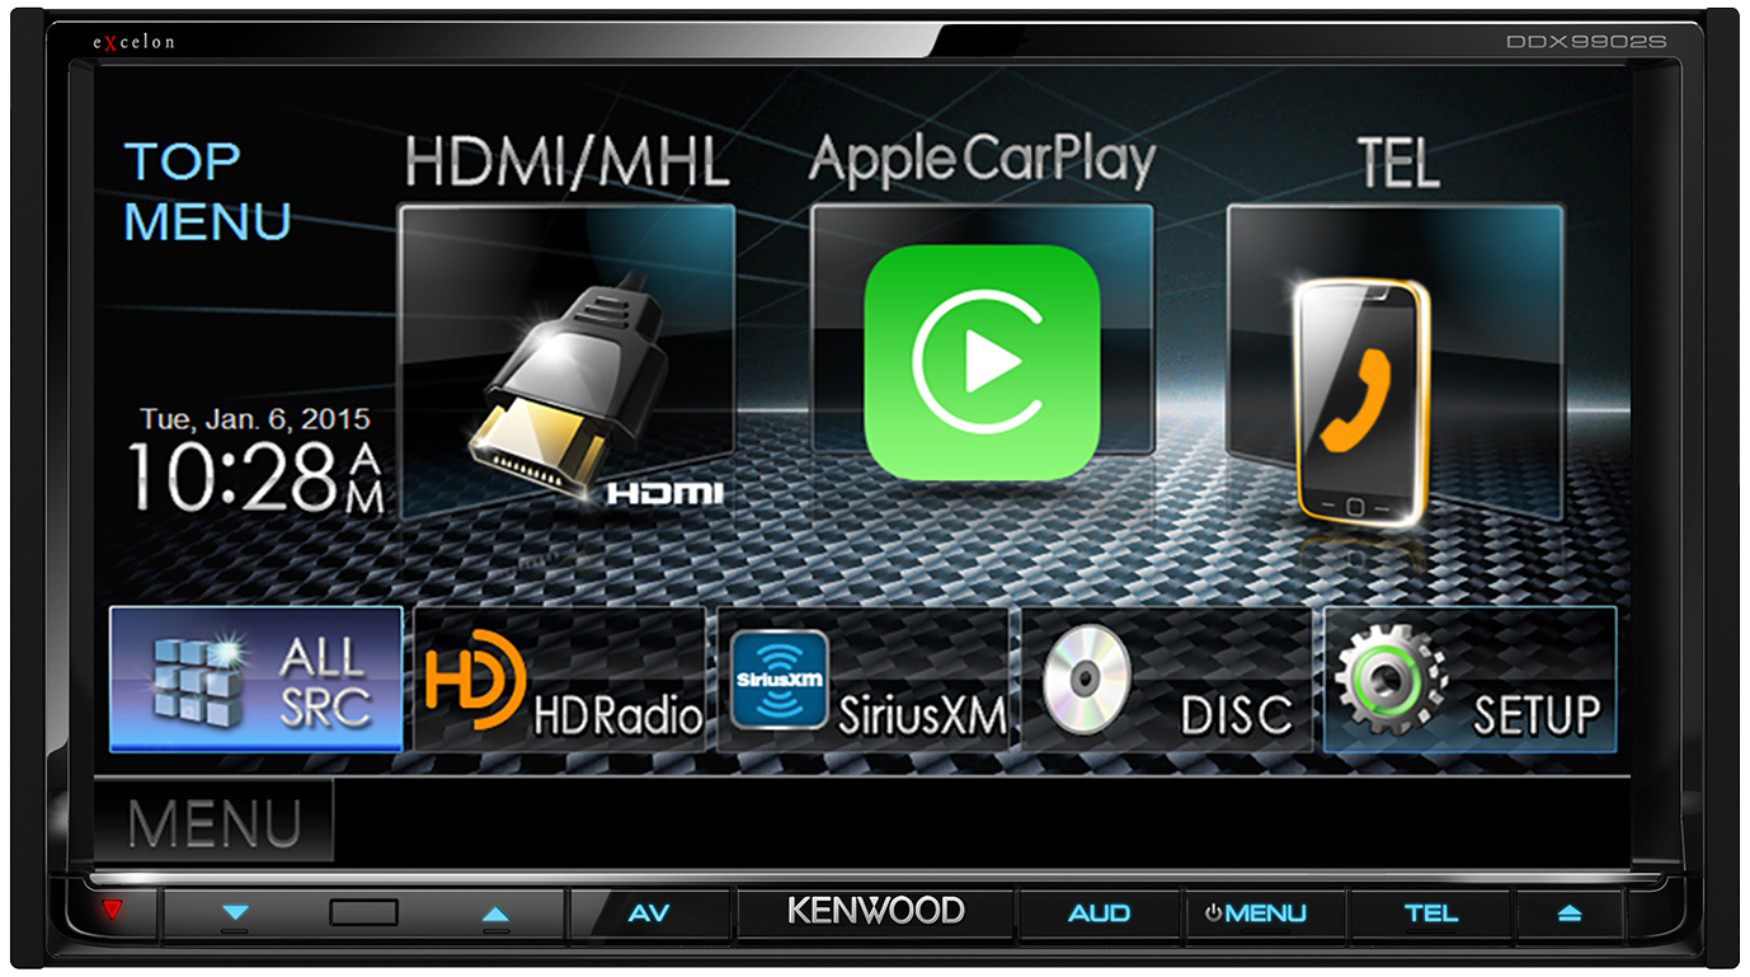 Kenwood CarPlay